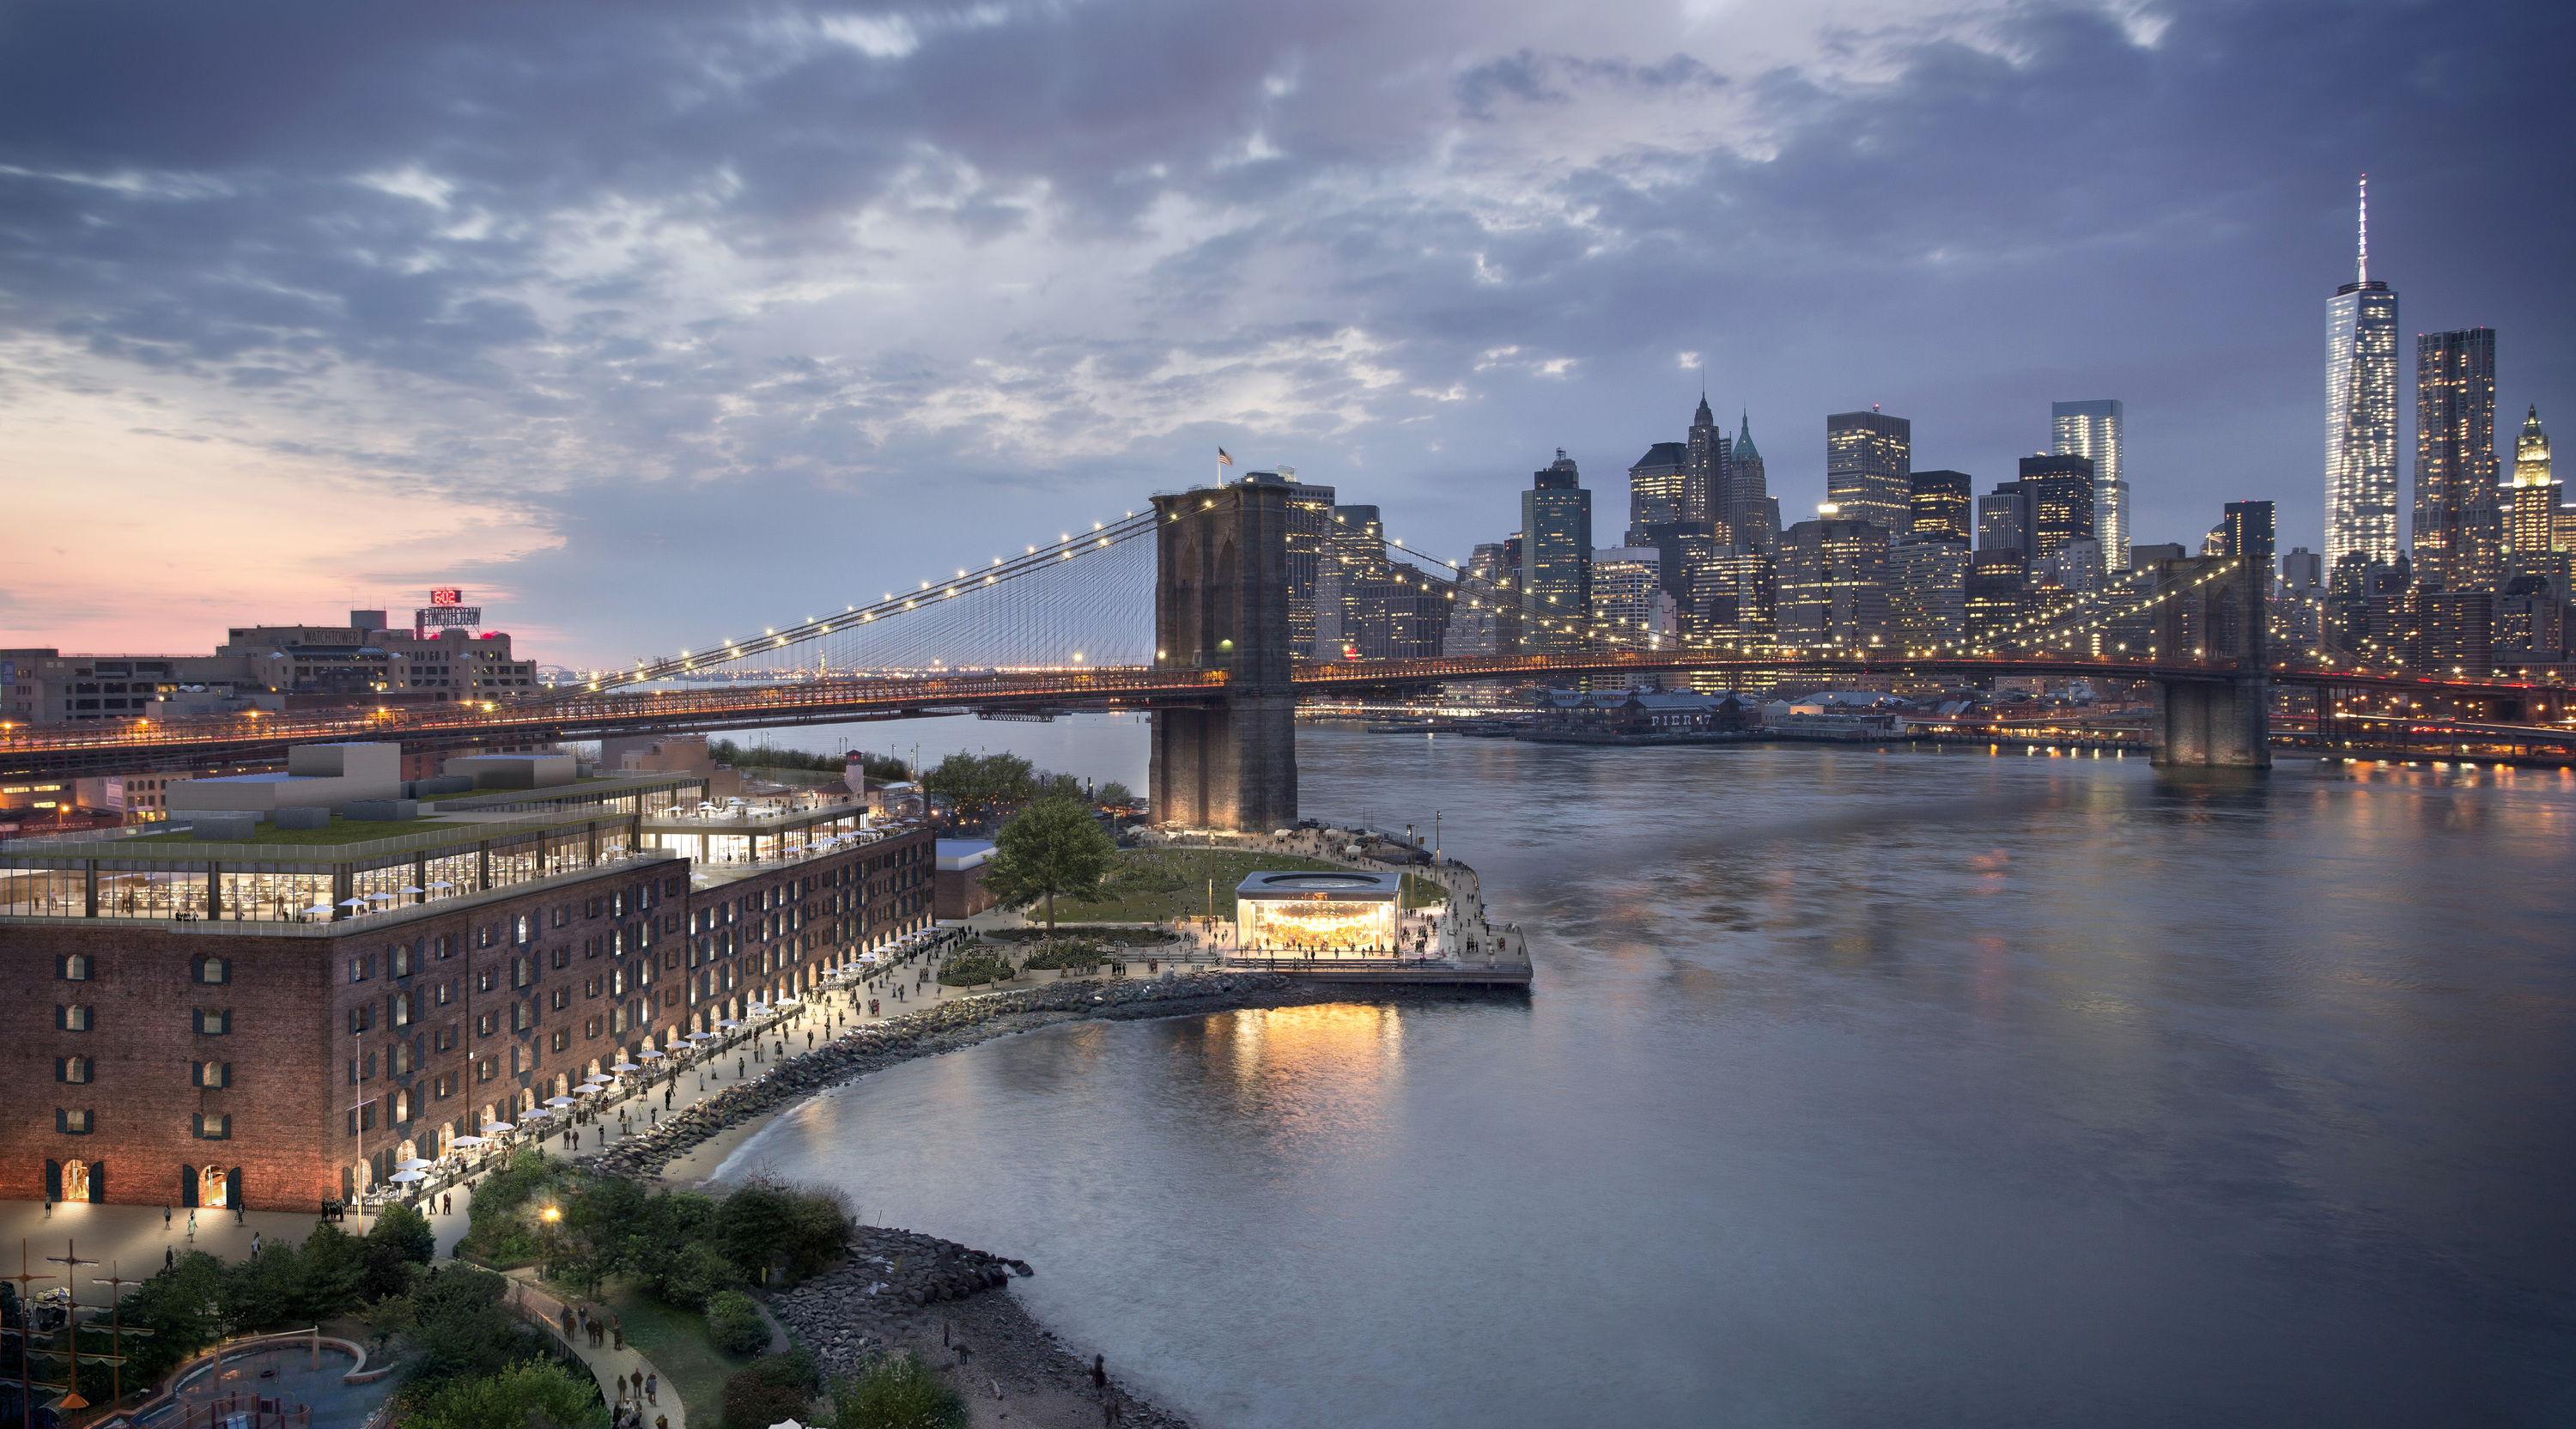 3dca9a61 16 Things to Do in Dumbo, Brooklyn Plus Where to Eat and Drink